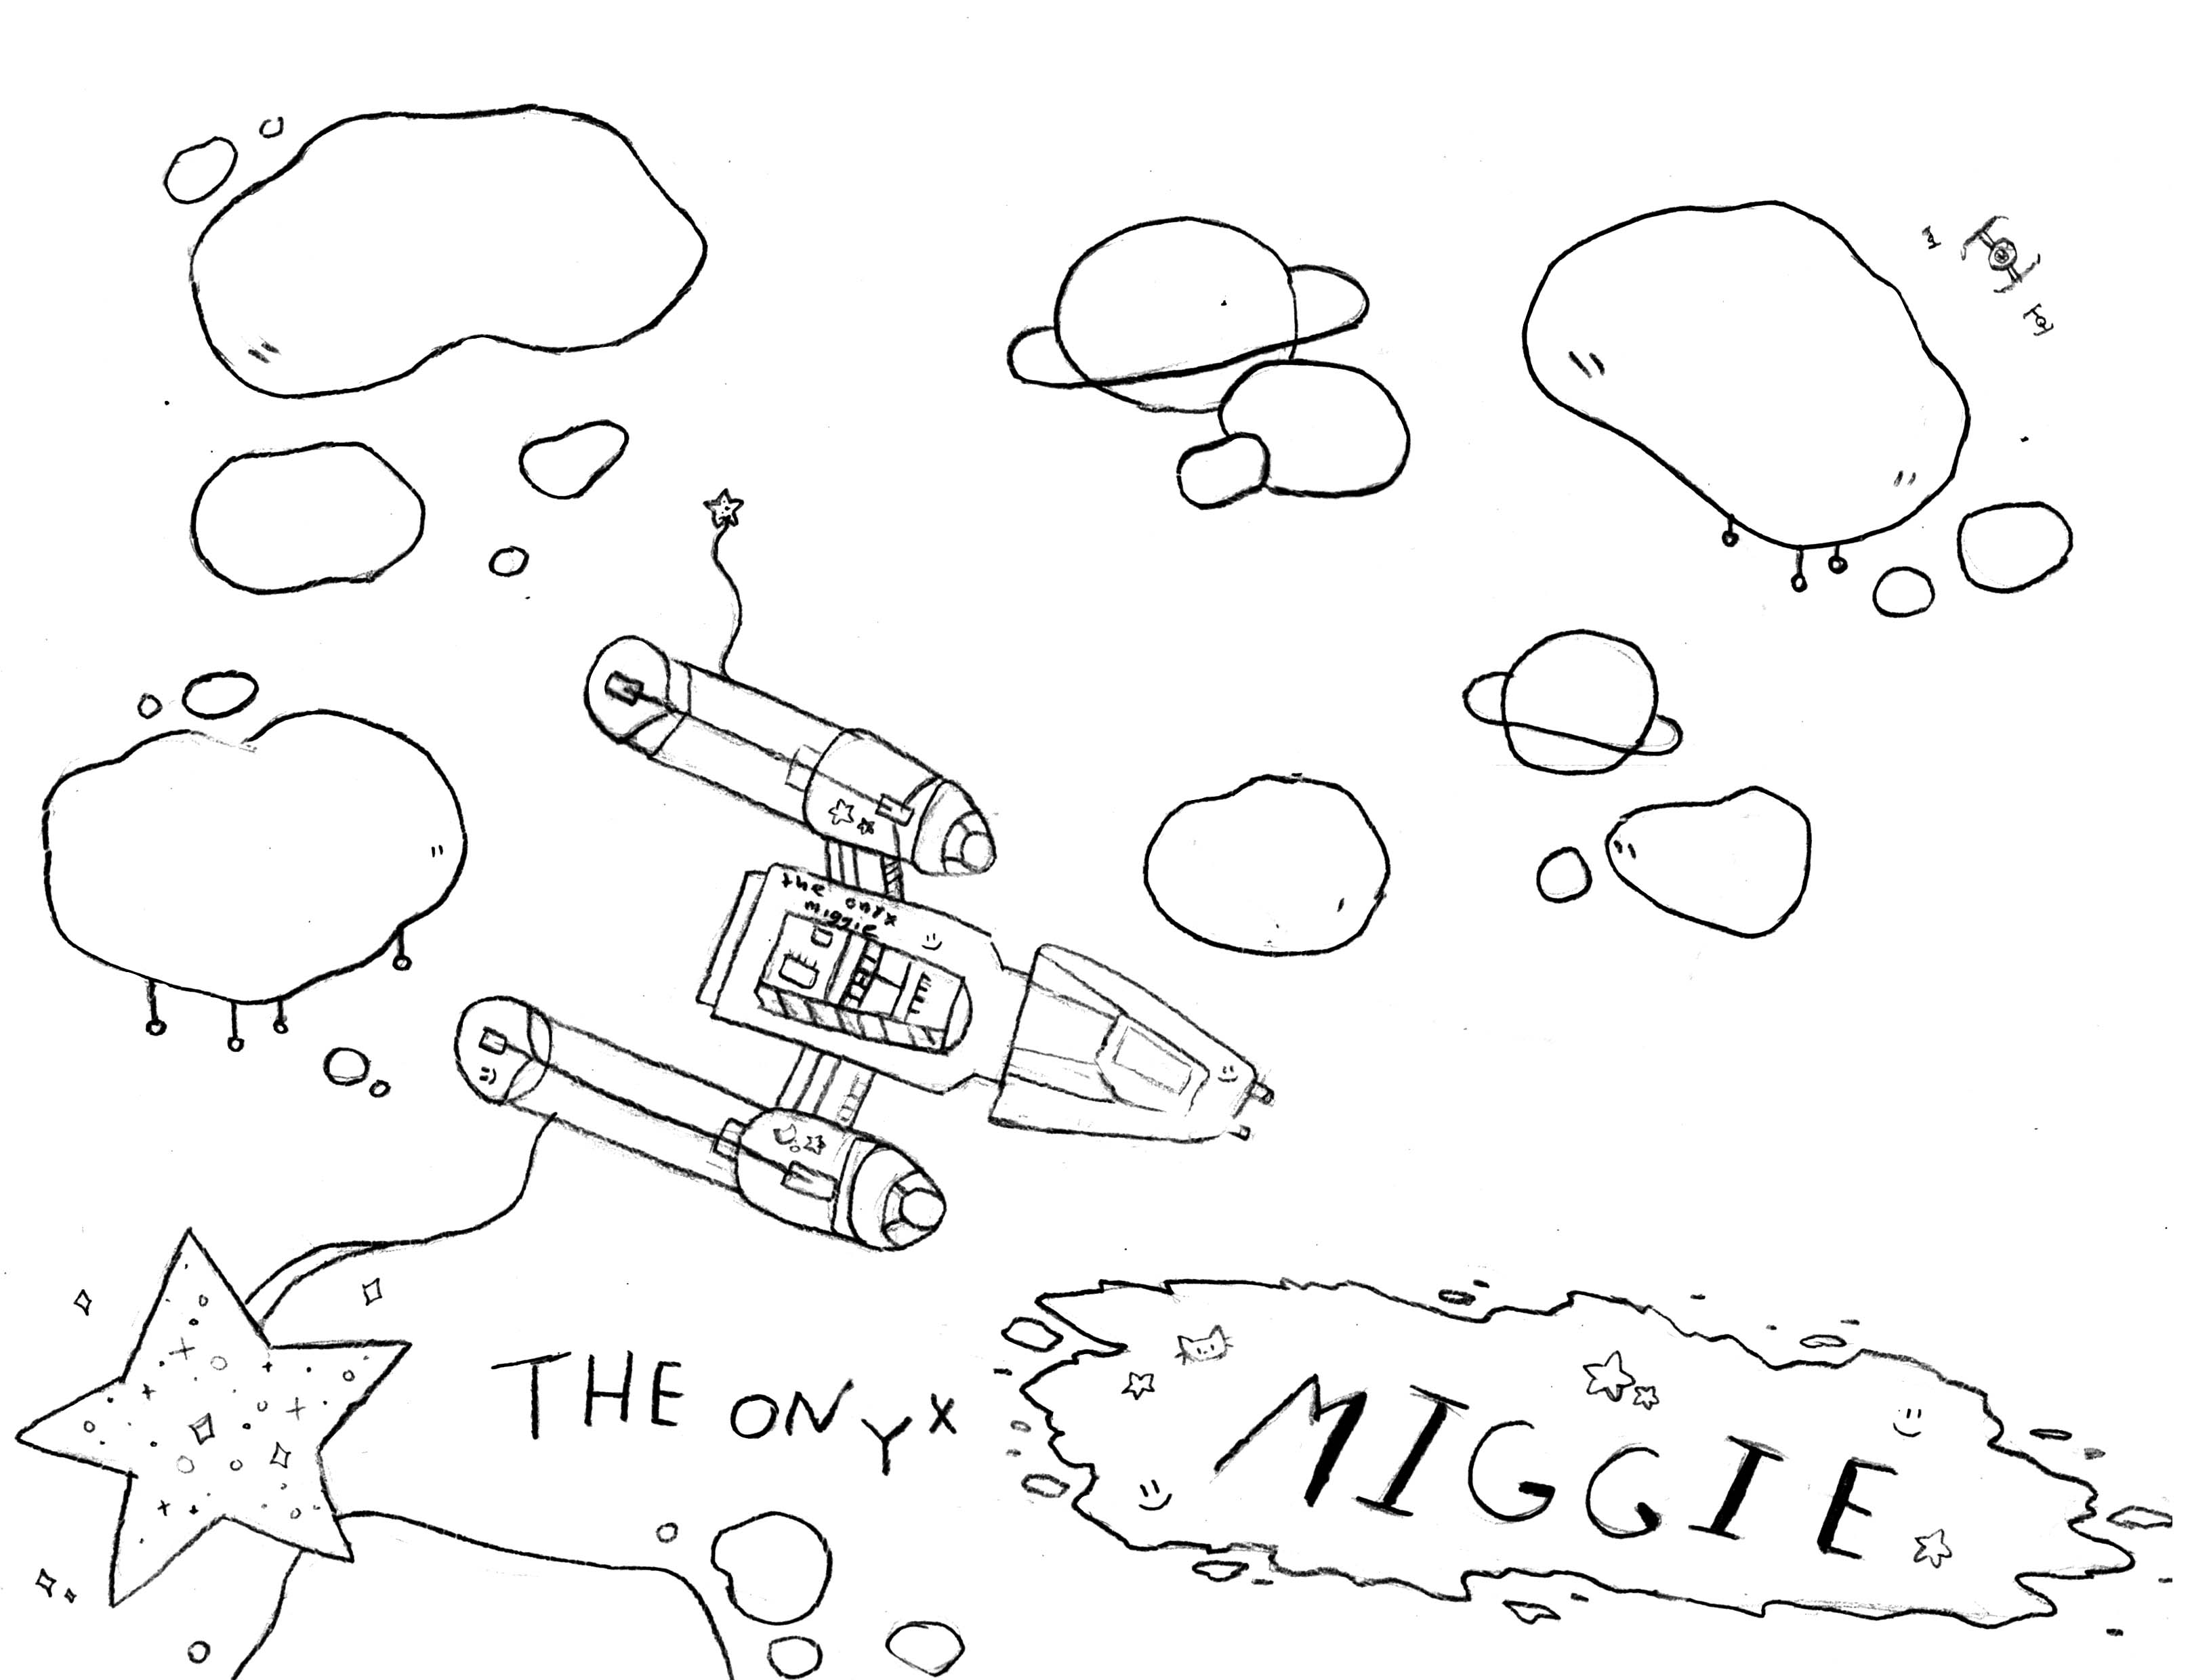 Neko's personal spacecraft, a Y-Wing named The Onyx Miggie.